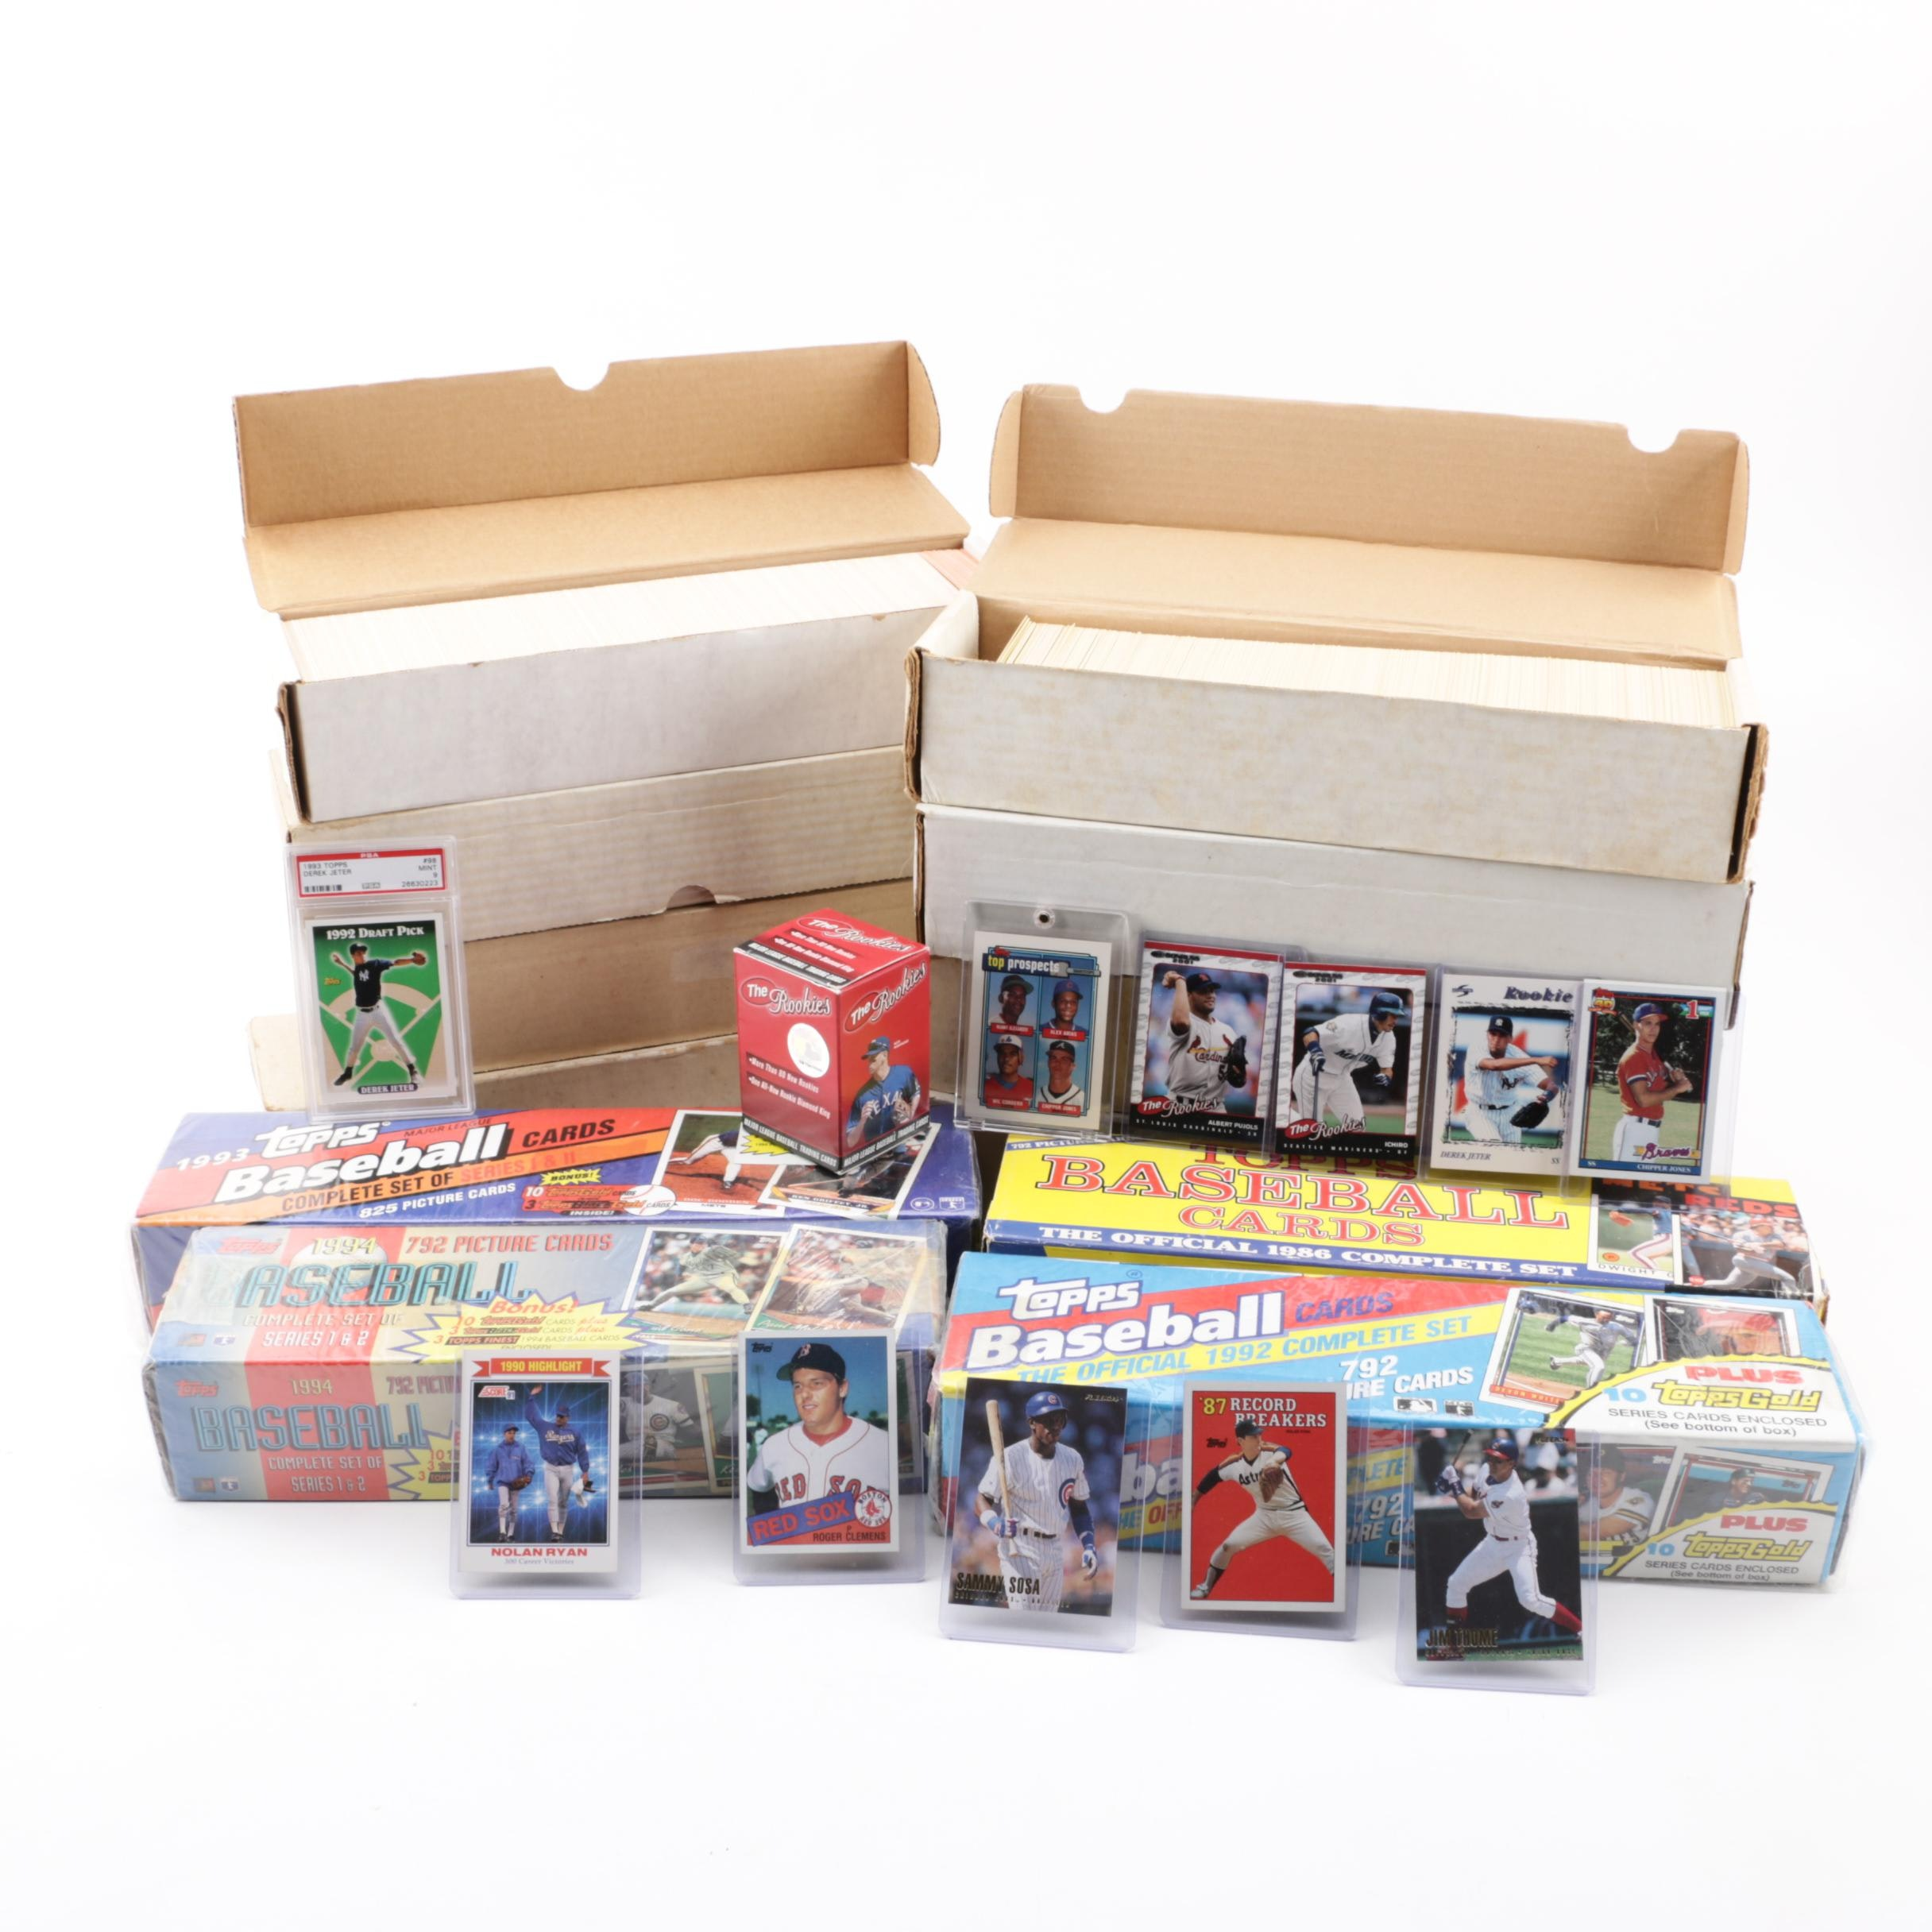 1980s-1990s Baseball Cards Sets with Topps Graded Jeter, Pujols, Ichiro Rookies